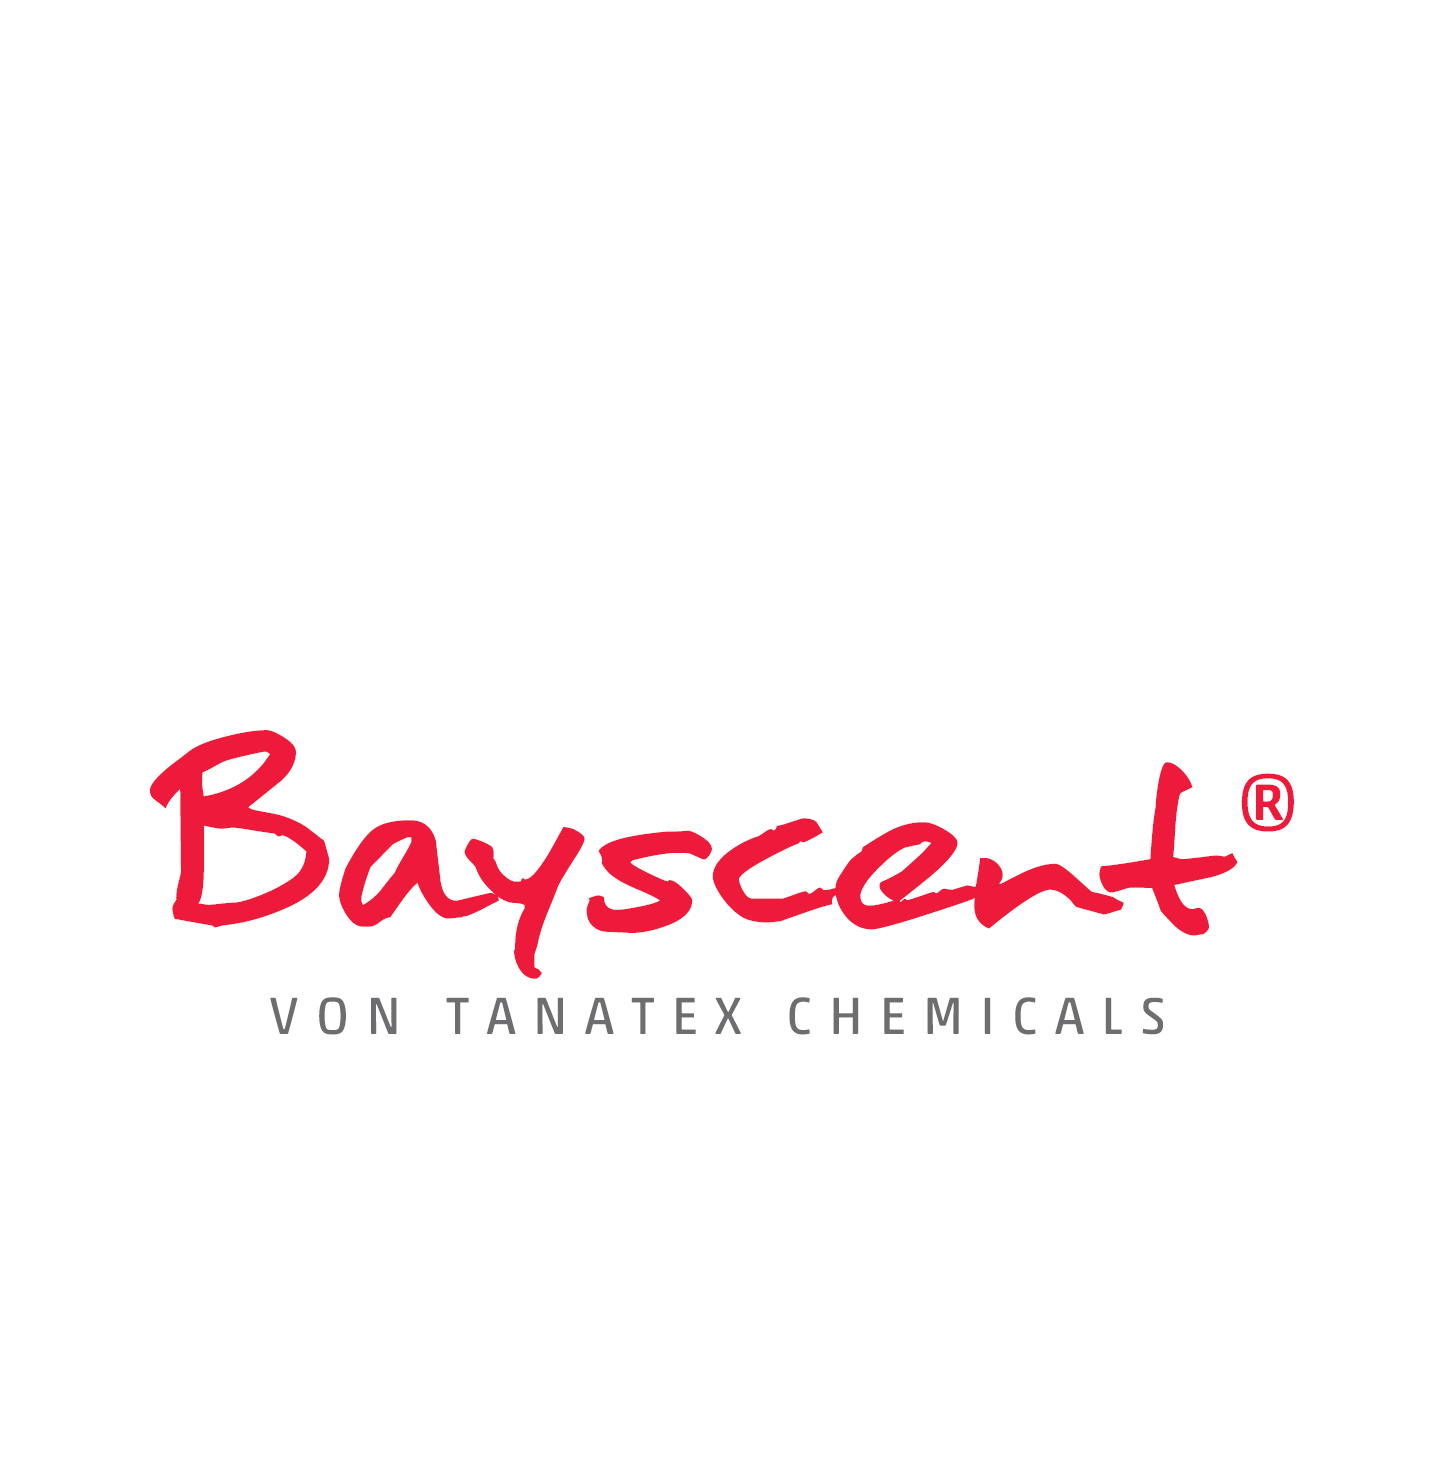 Bayscent von tanatex chemicals